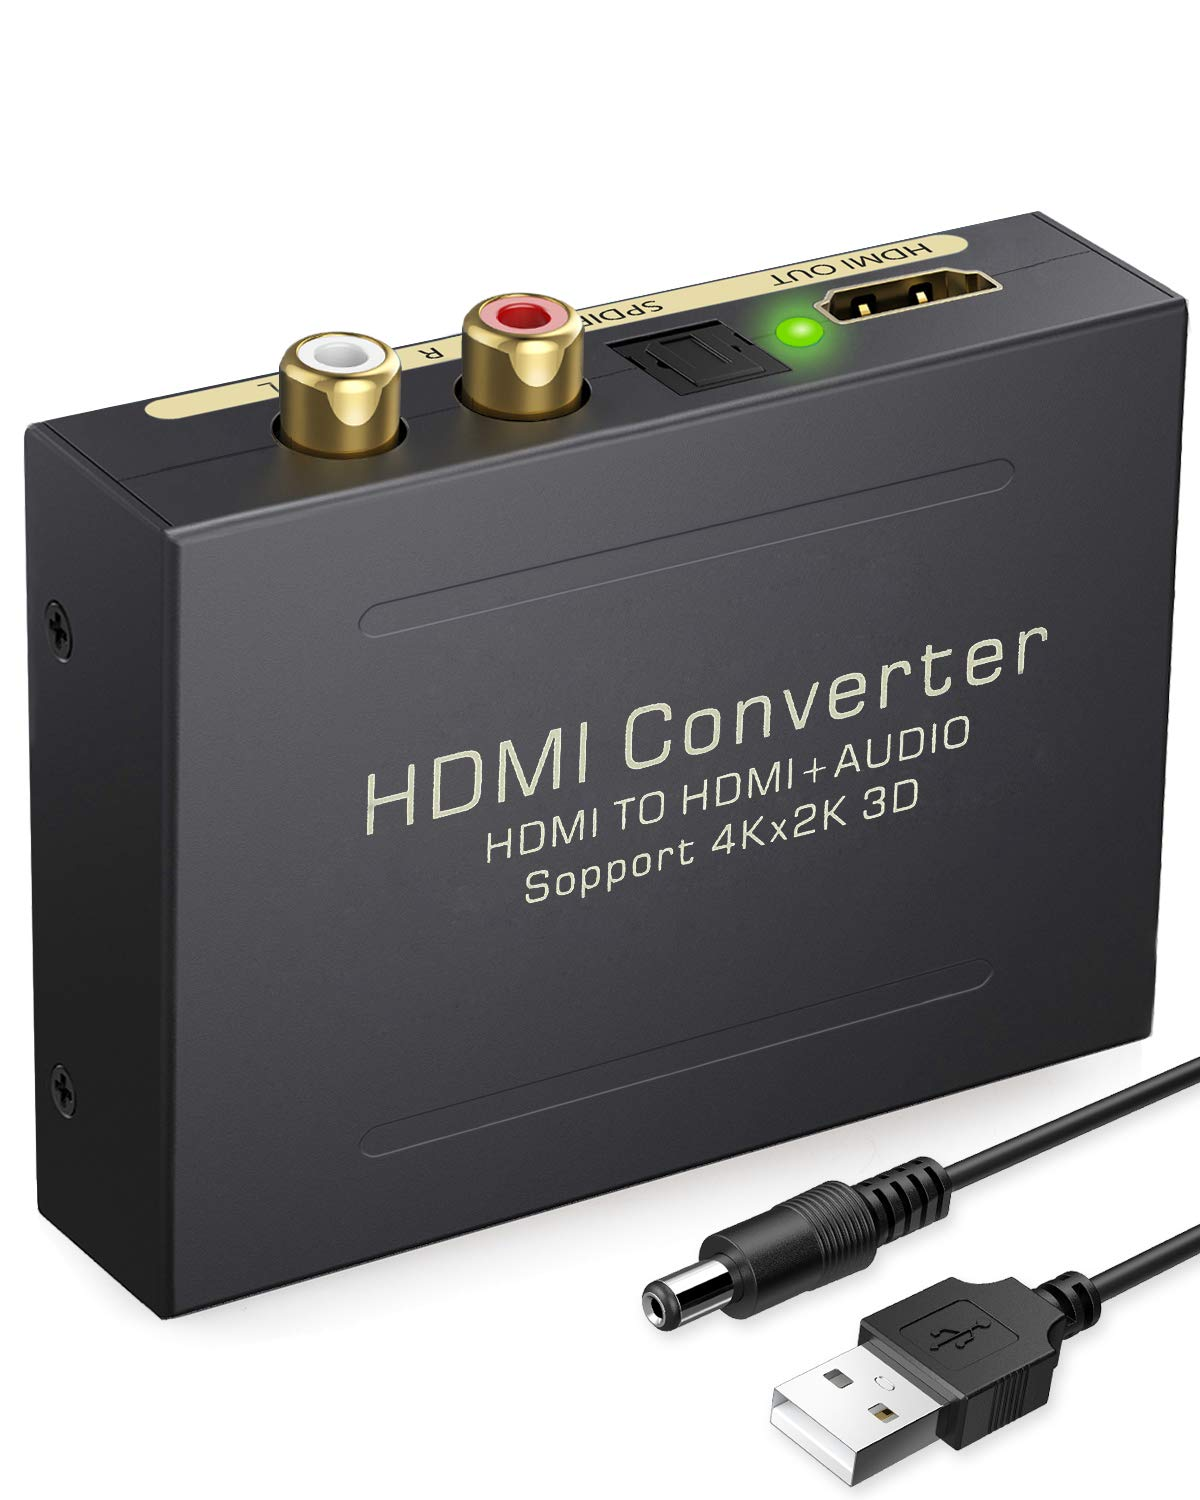 eSynic 4K HDMI Audio Extractor HDMI to HDMI + Optical TOSLINK SPDIF + Analog RCA L/R Stereo Audio Video Spiltter Adapter Converter Support 4K@30Hz 1080P Full HD 3D for Blu-ray Player Xbox PS3 PS4